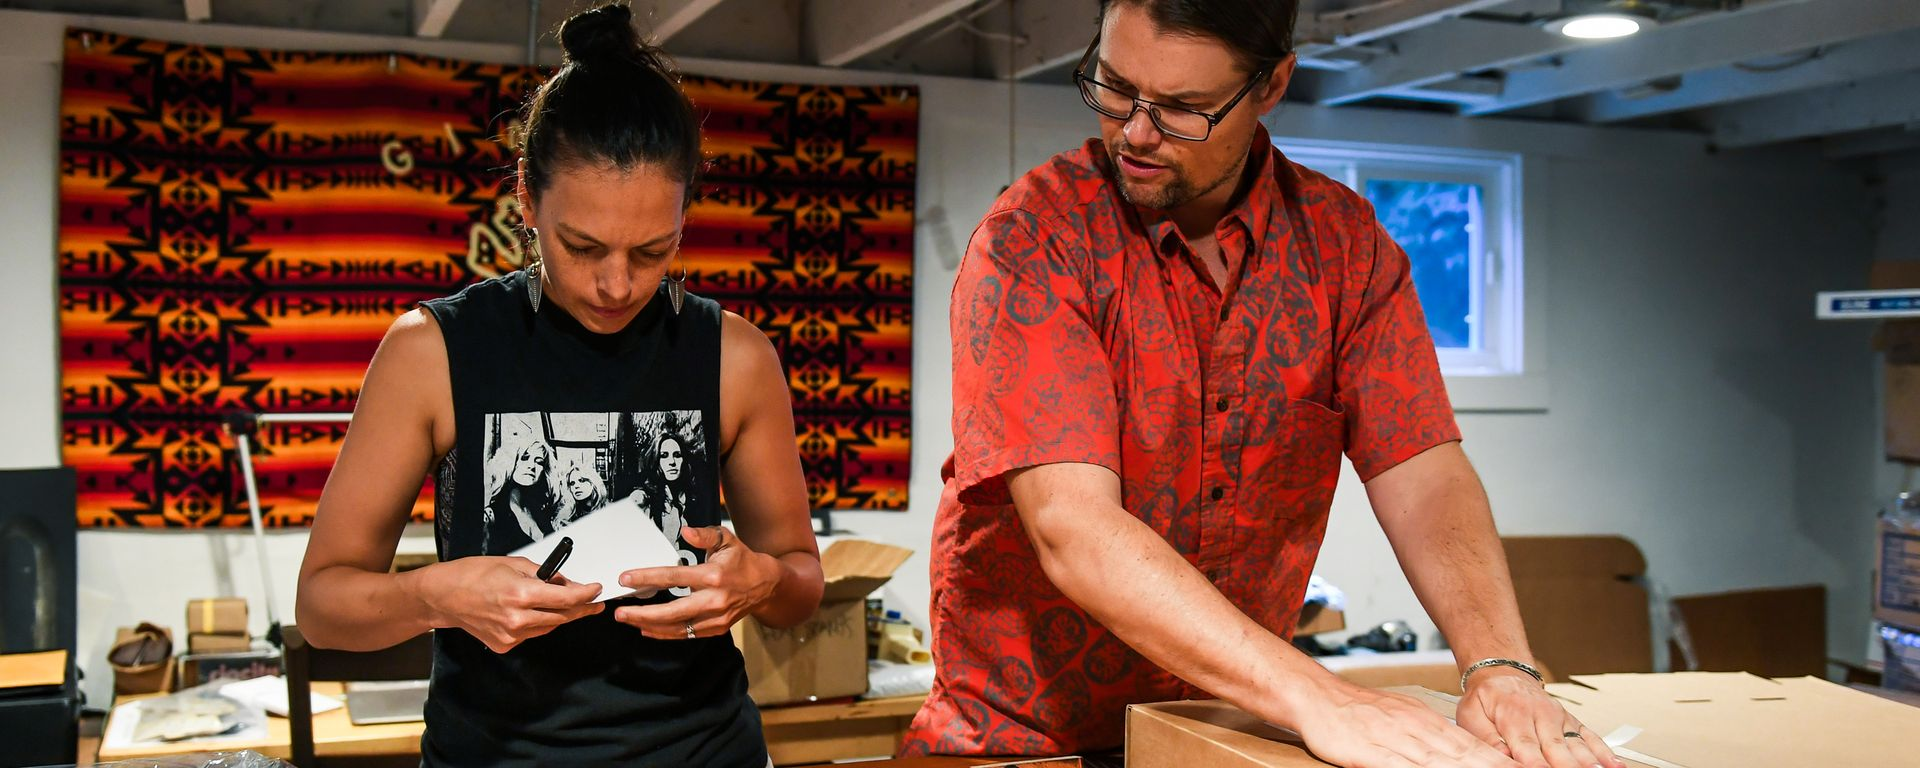 Ginew Owners Erik Brodt and Amanda Bruegl in Their Workspace